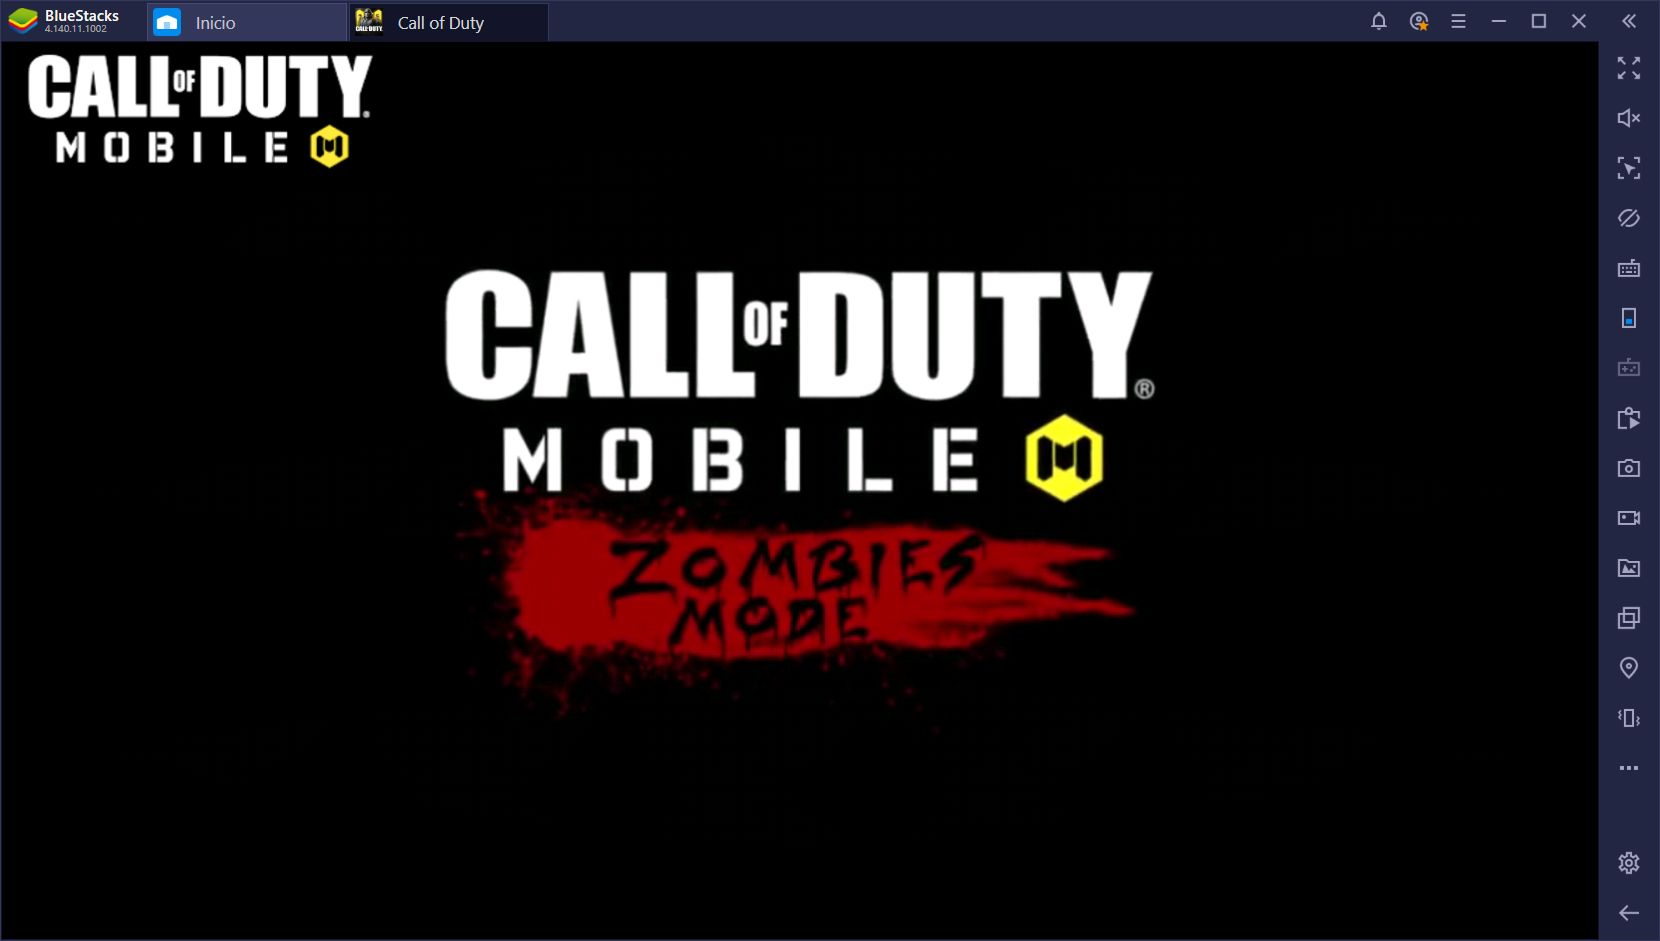 Call of Duty: Mobile on PC Patch 2.0 - Here's What's New